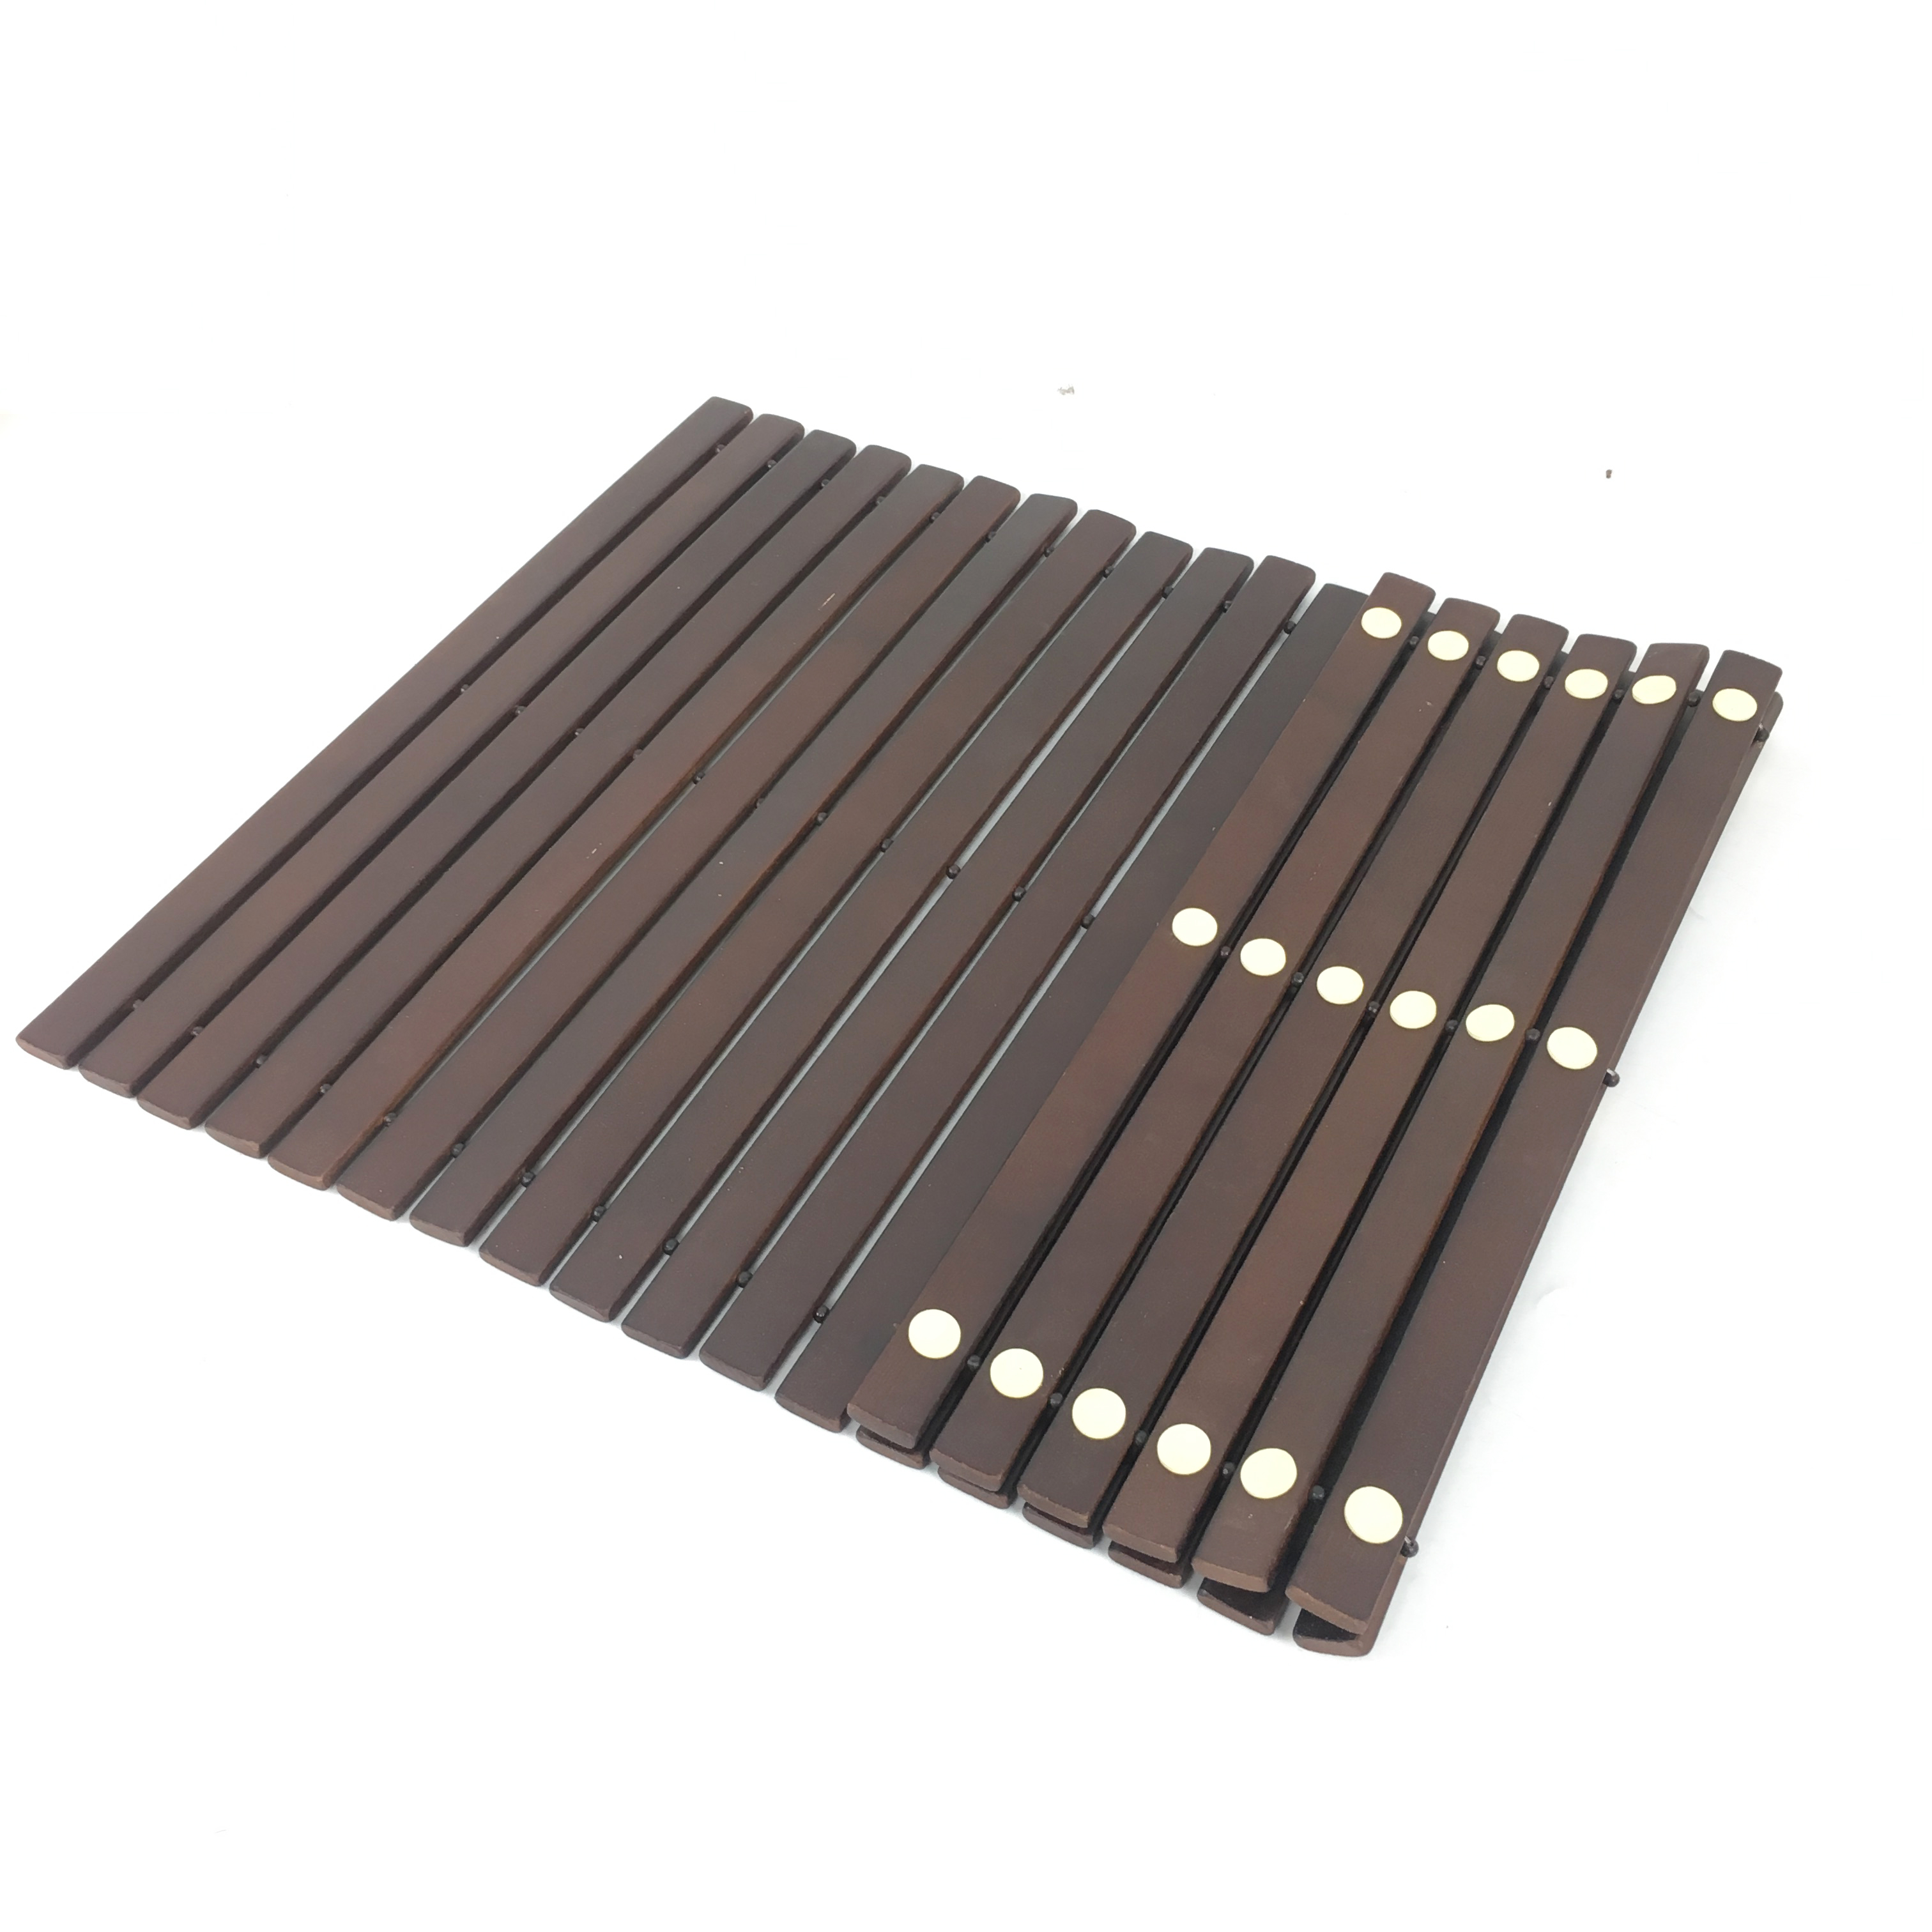 non design shower bathroom product itm slip bamboo natural wooden small details bath mat duck board